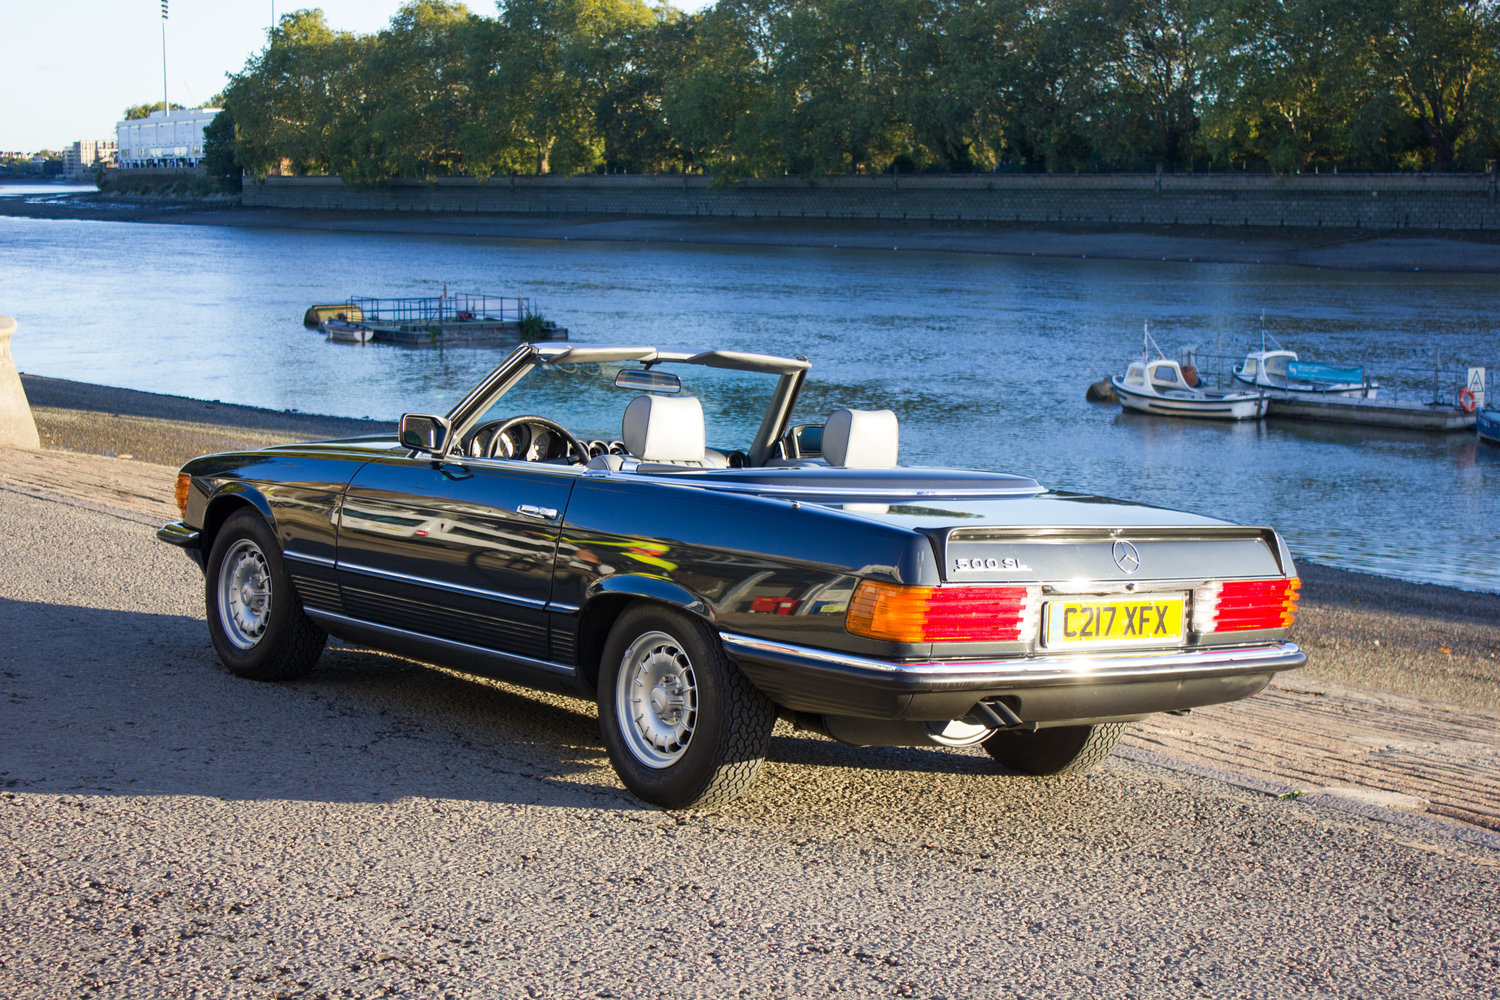 1985 Mercedes-Benz 500SL - LHD, AC, Heated Seats, 43k Miles For Sale (picture 3 of 6)